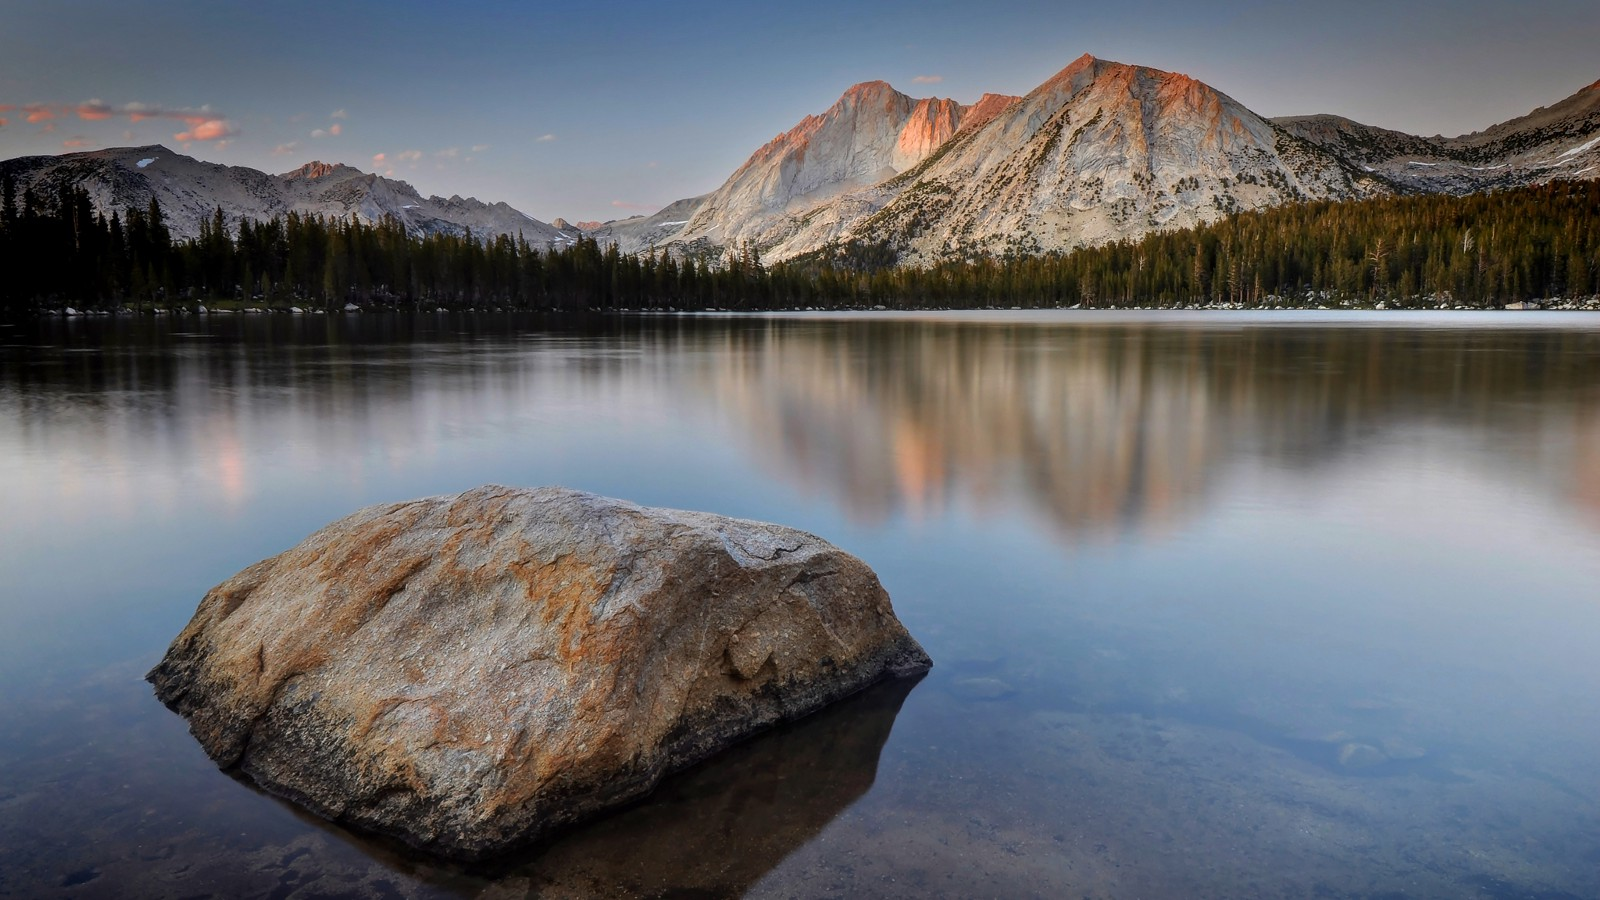 Mount Conness and Lower Young Lake, Yosemite National Park, California